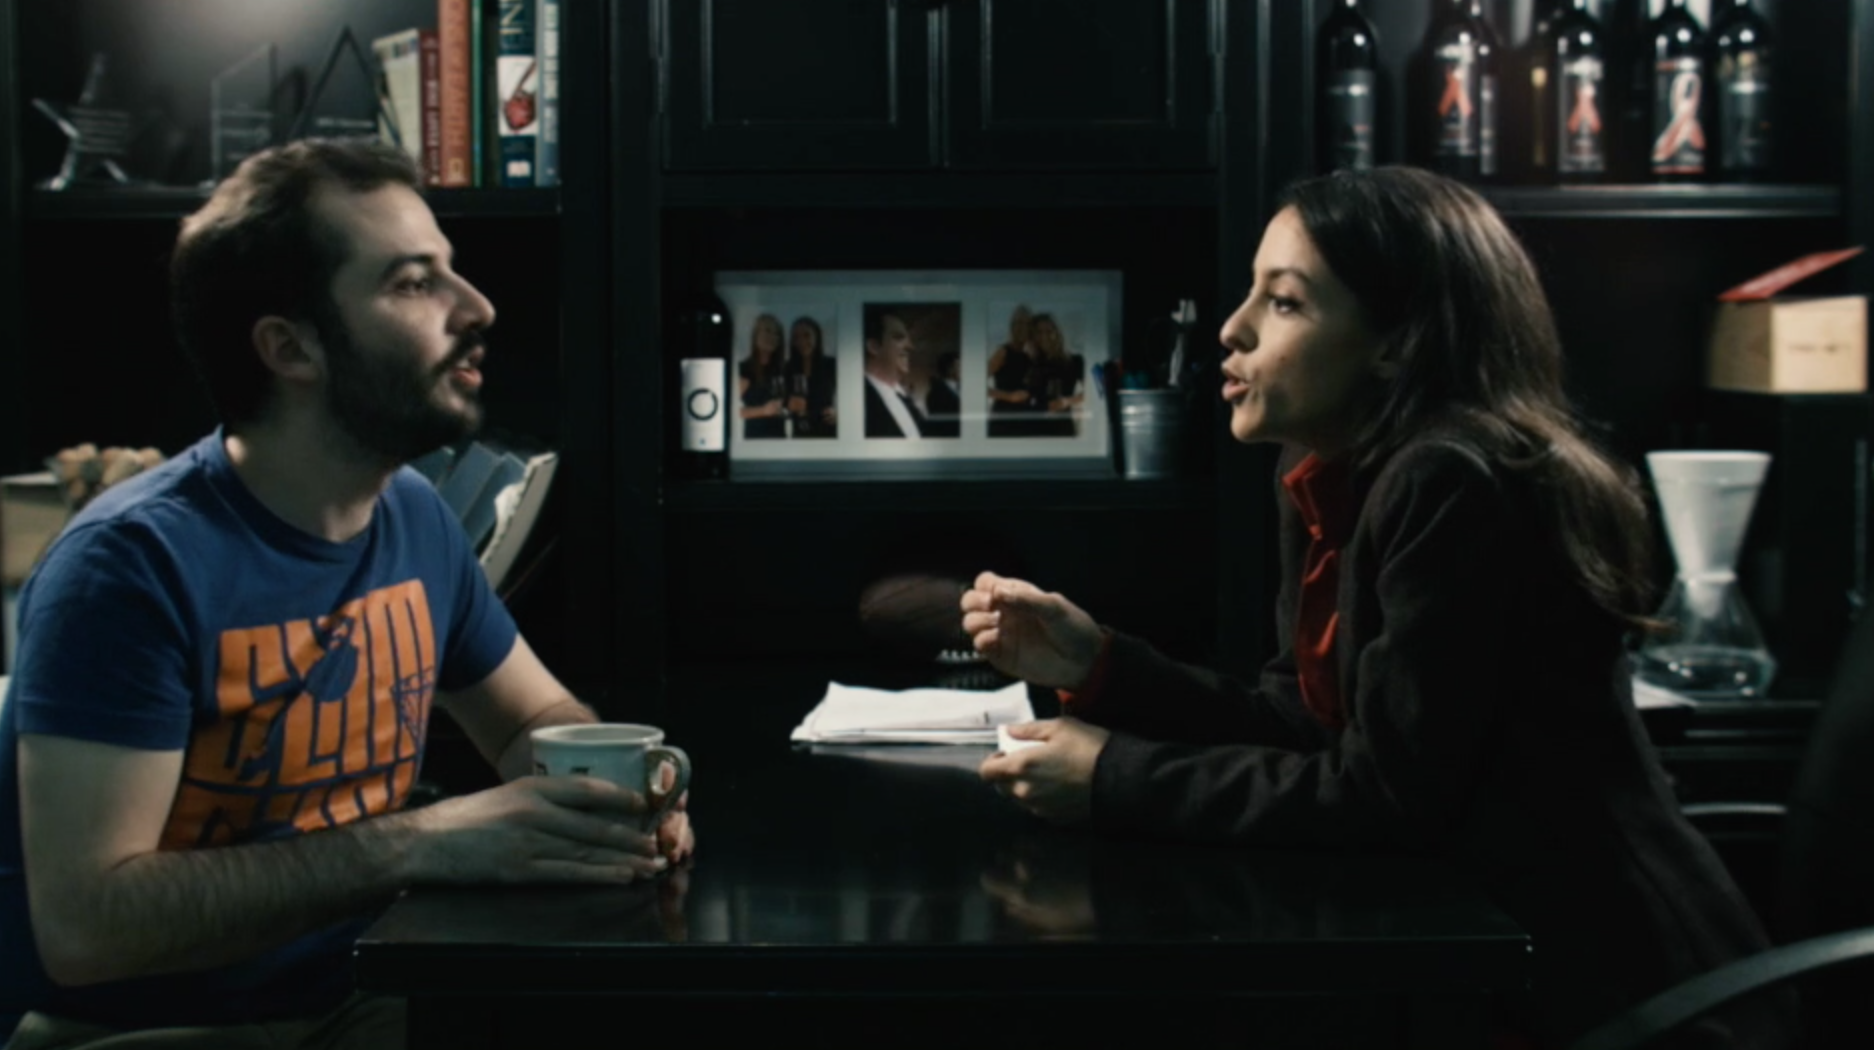 *a still from Kitchen Sink's promo video directed by Chris Winterbauer, featuring Kitchen Sink Host Kevin Comartin and Gabriela Rosamond as 'Sheela'.